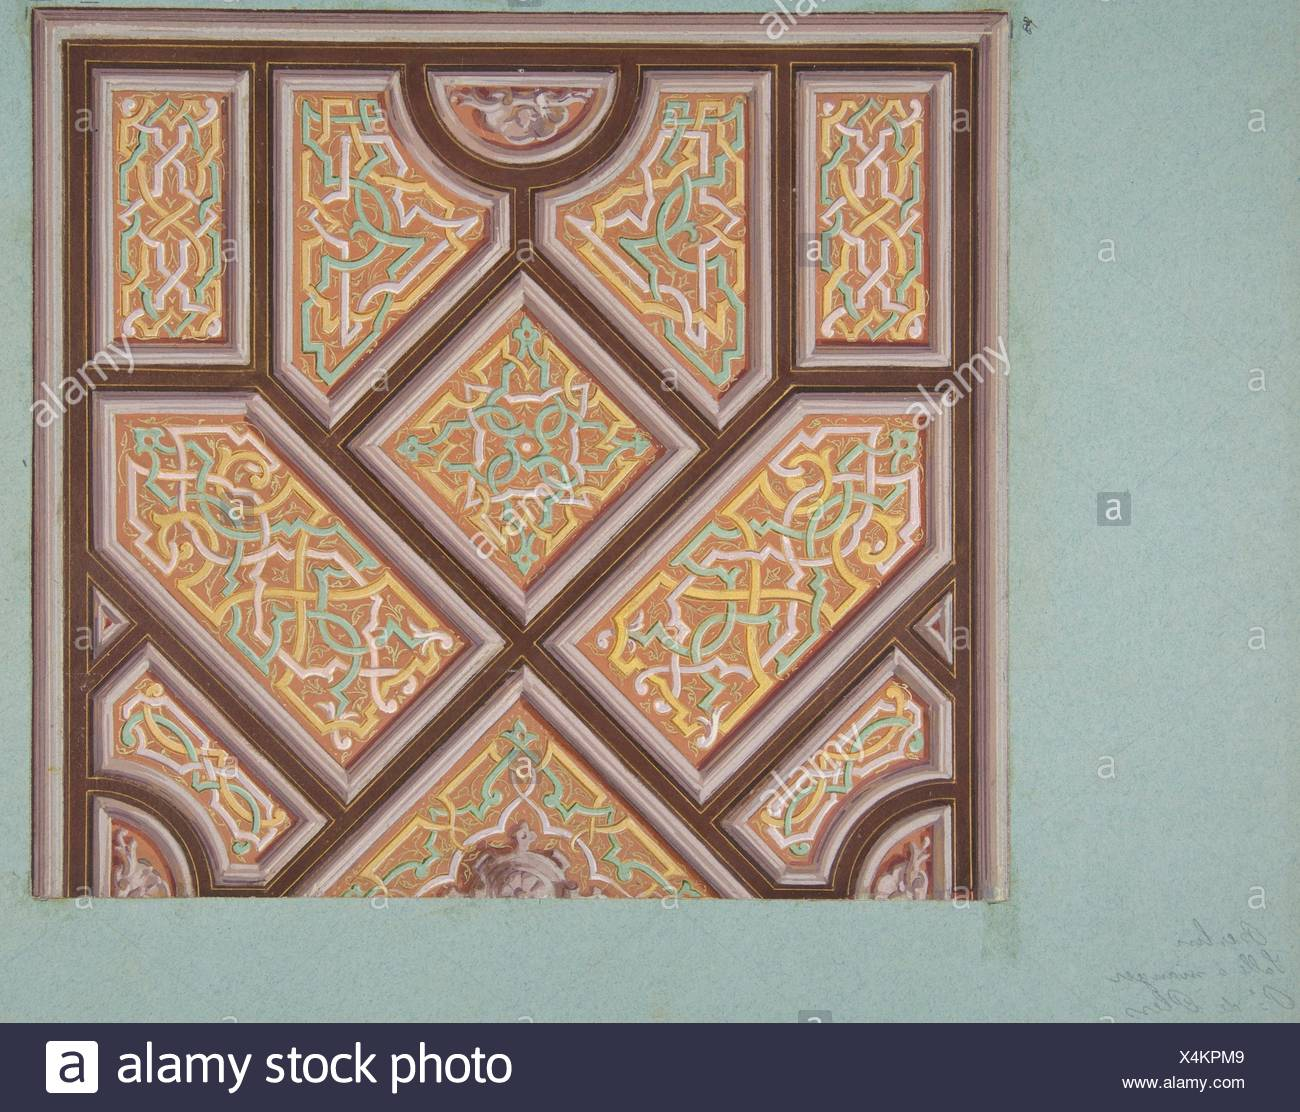 Design for Ceiling Decoration in the Dining Room, Hôtel de Pless, Berlin. Artist: Jules-Edmond-Charles Lachaise (French, died 1897); Artist: - Stock Image